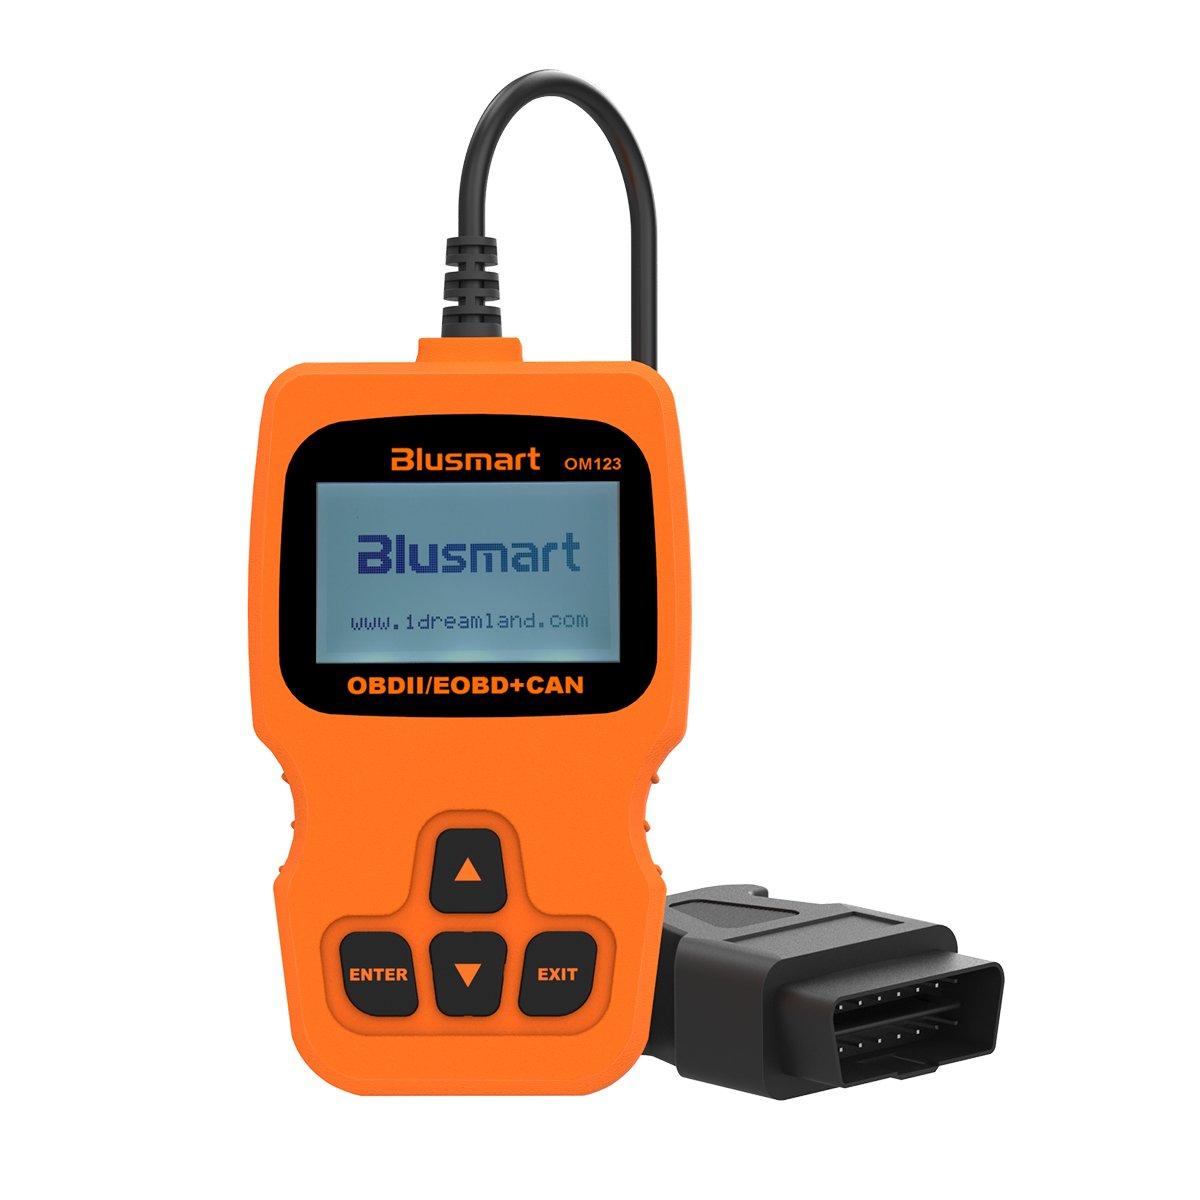 Blusmart OBD MATE review